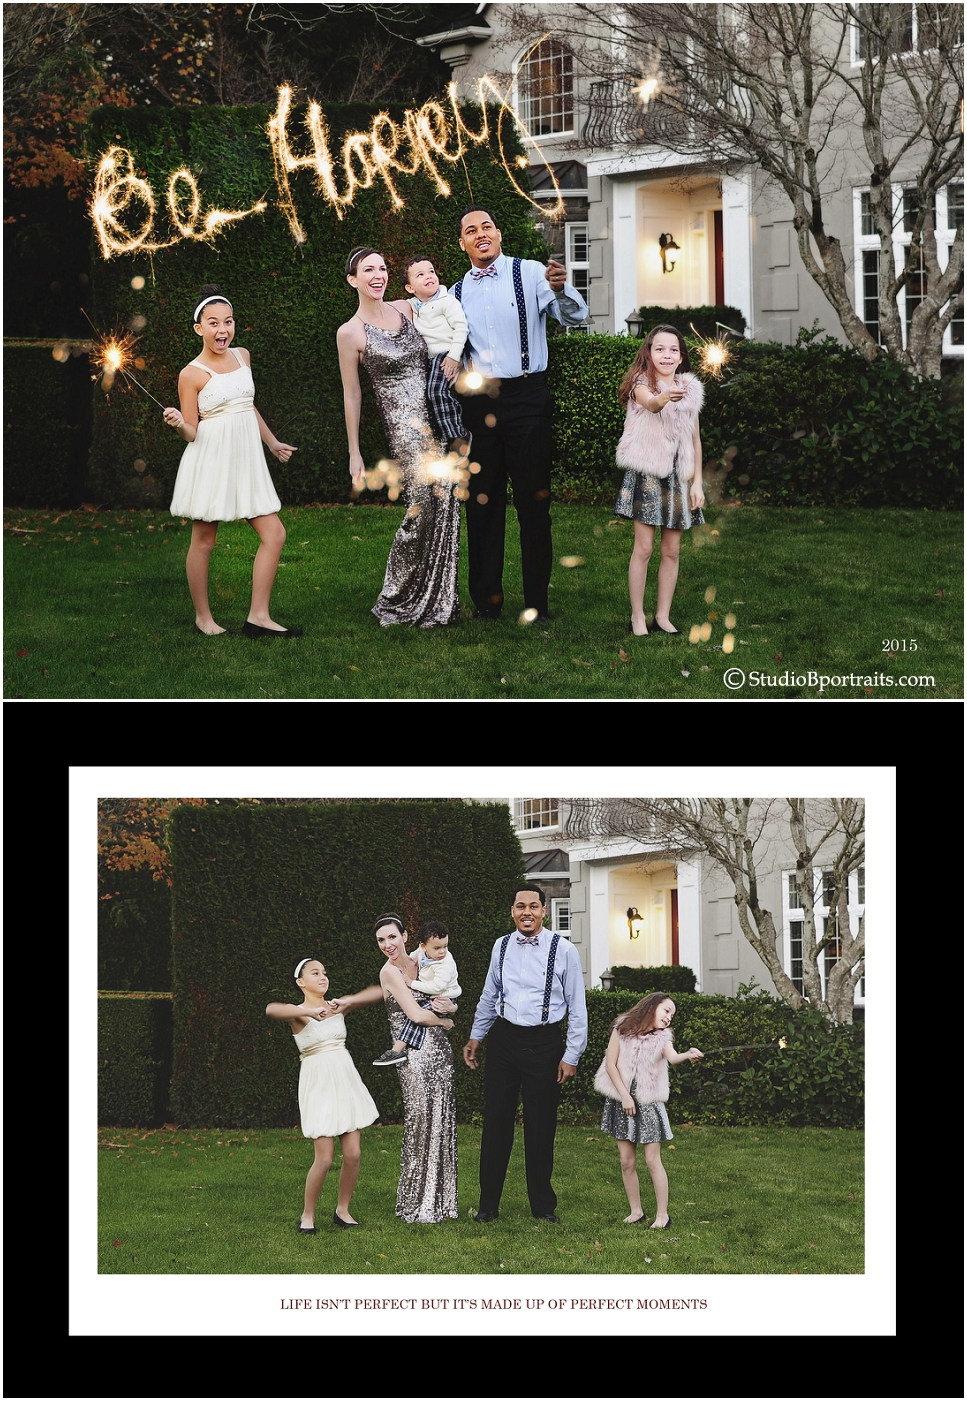 Formal family holiday portrait using sparklers to write Be Happy in front of house by Studio B Portraits_0232.jpg